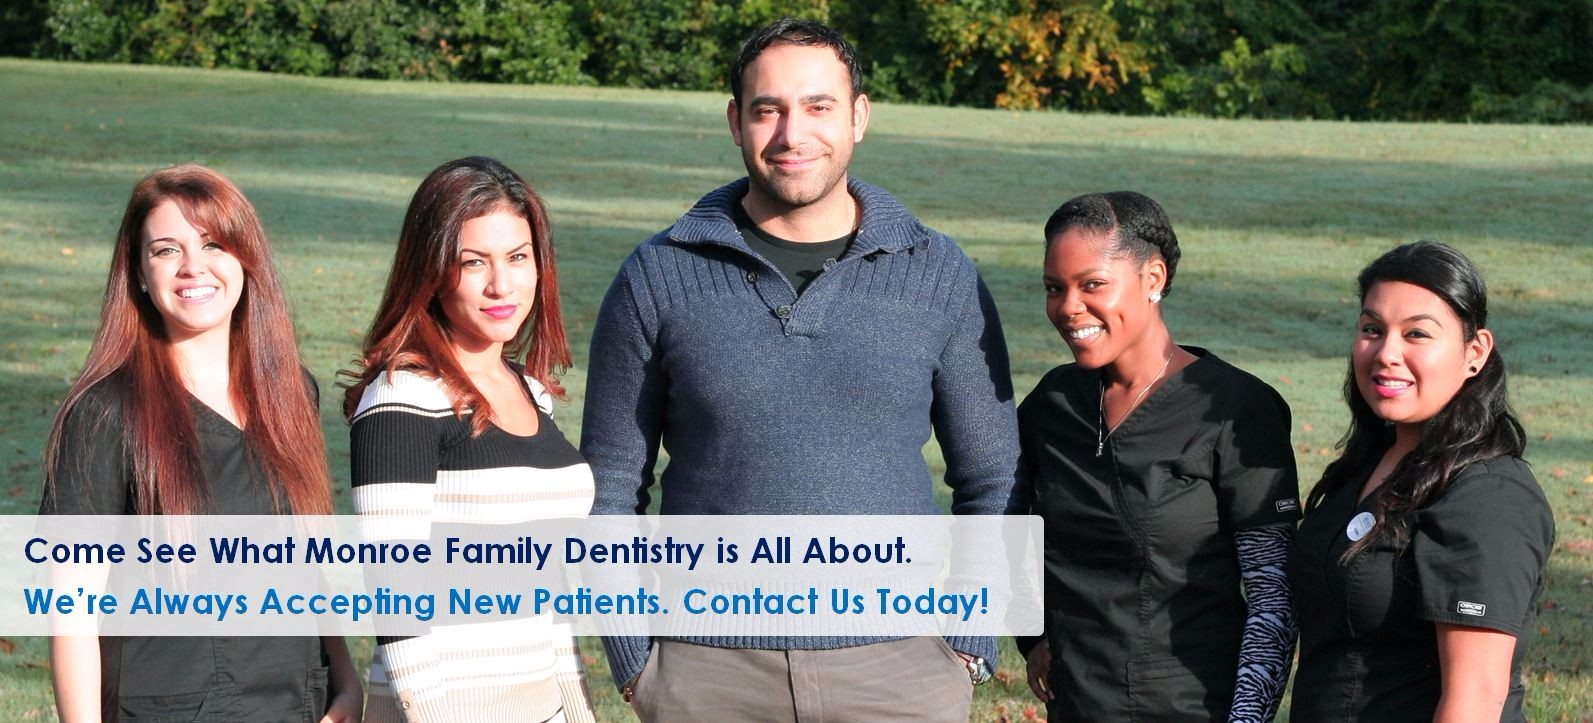 Finding the Right Dentist for You